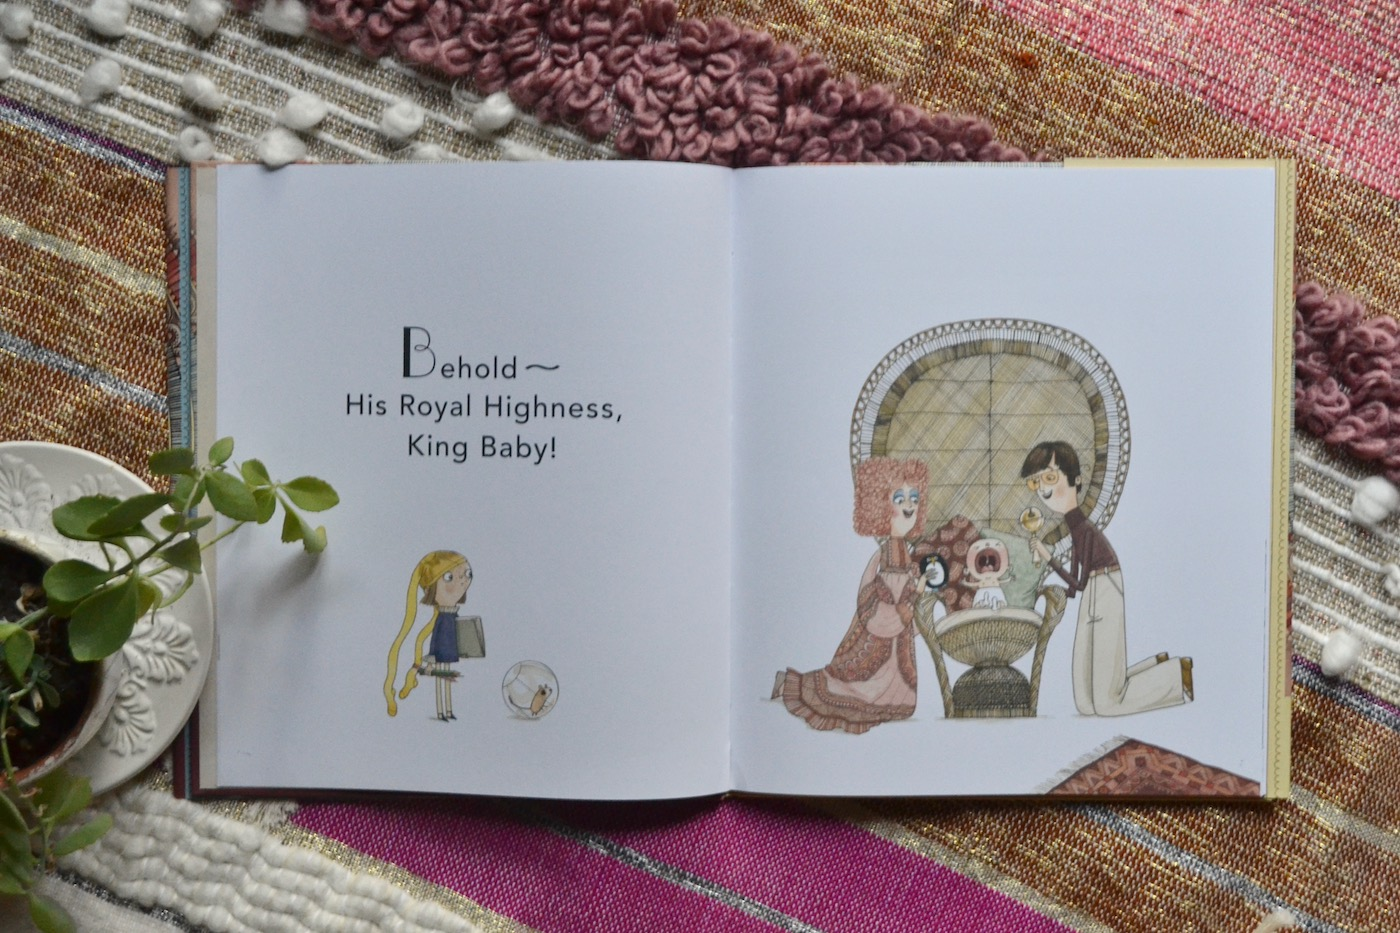 His Royal Highness King Baby by Sally Lloyd-Jones // www.thehiveblog.com